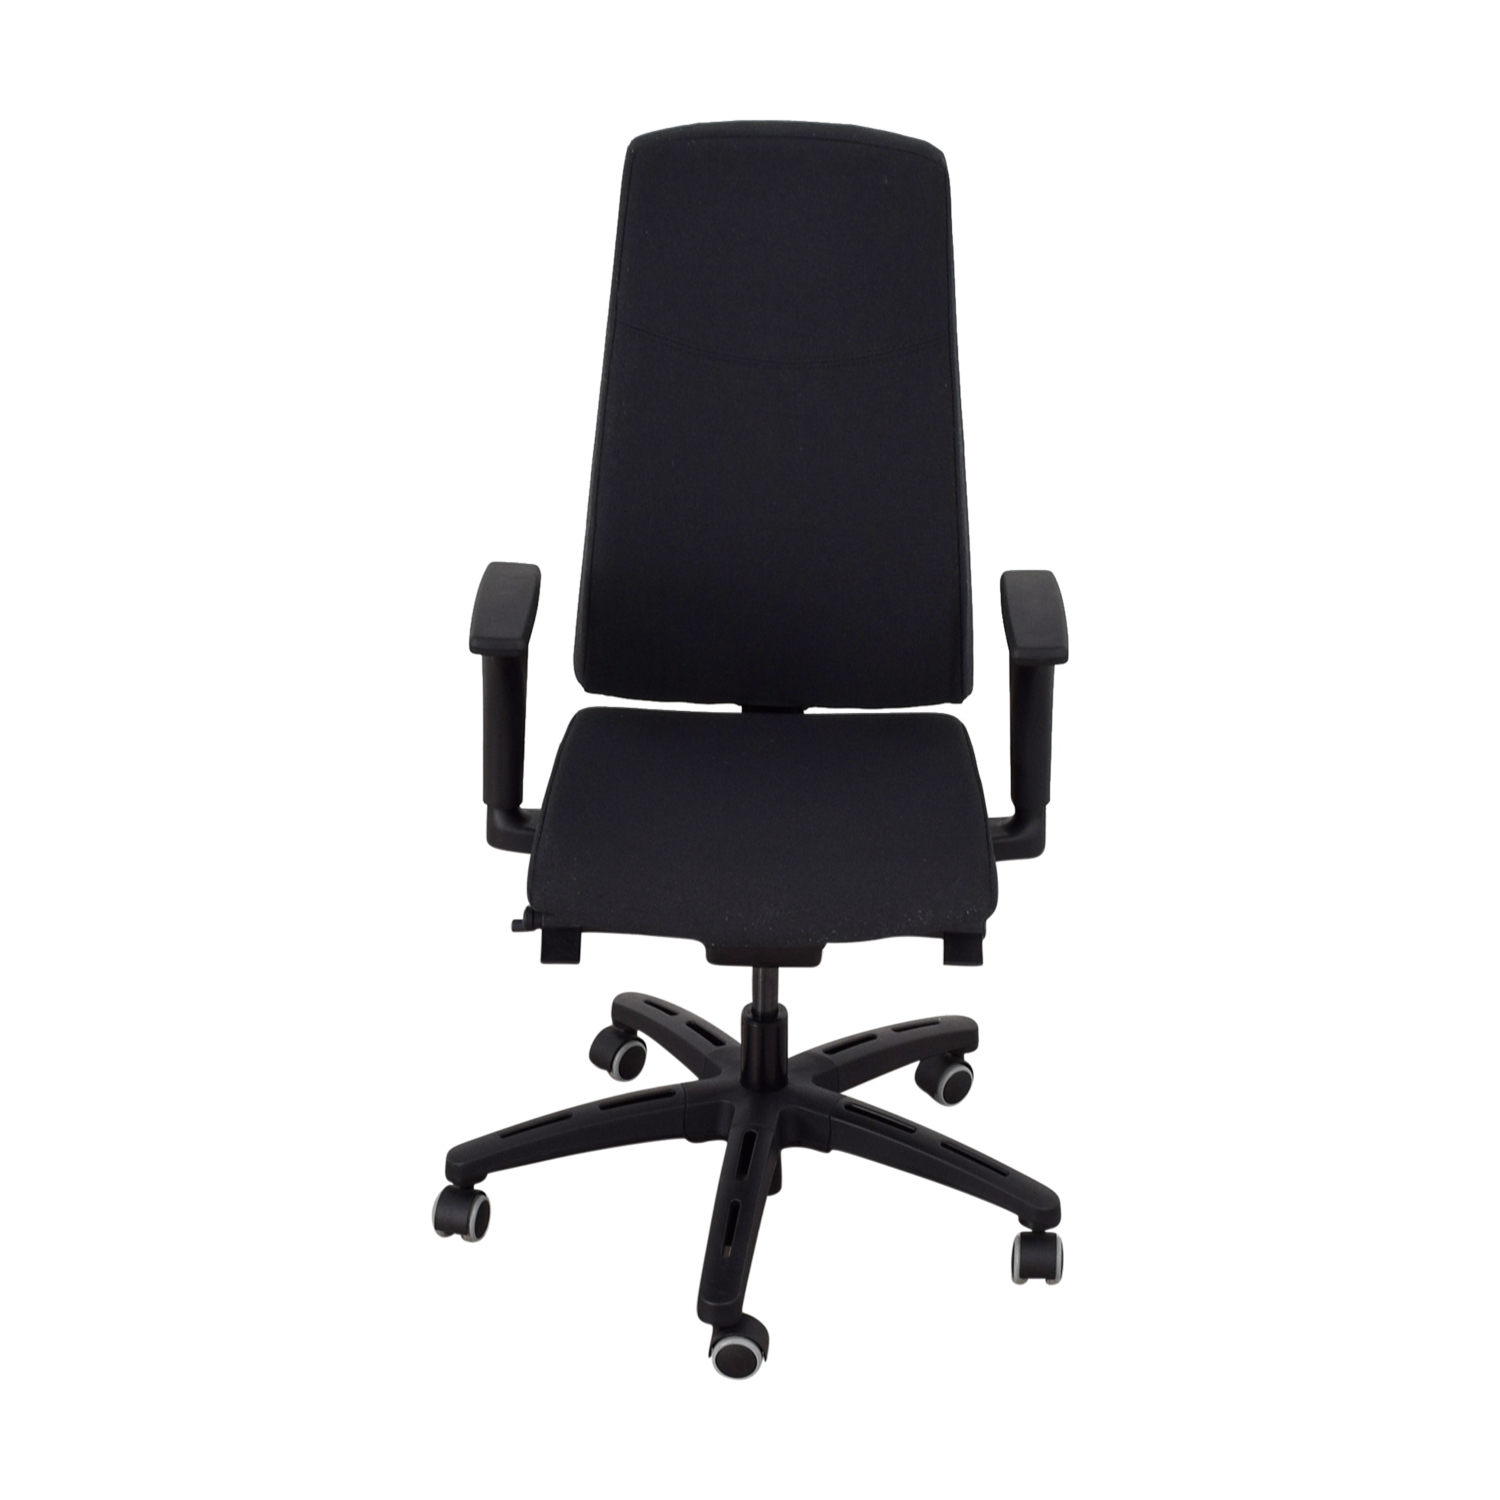 office furniture ikea. Shop IKEA Volmar Grey Office Chair With Arms Furniture Ikea I